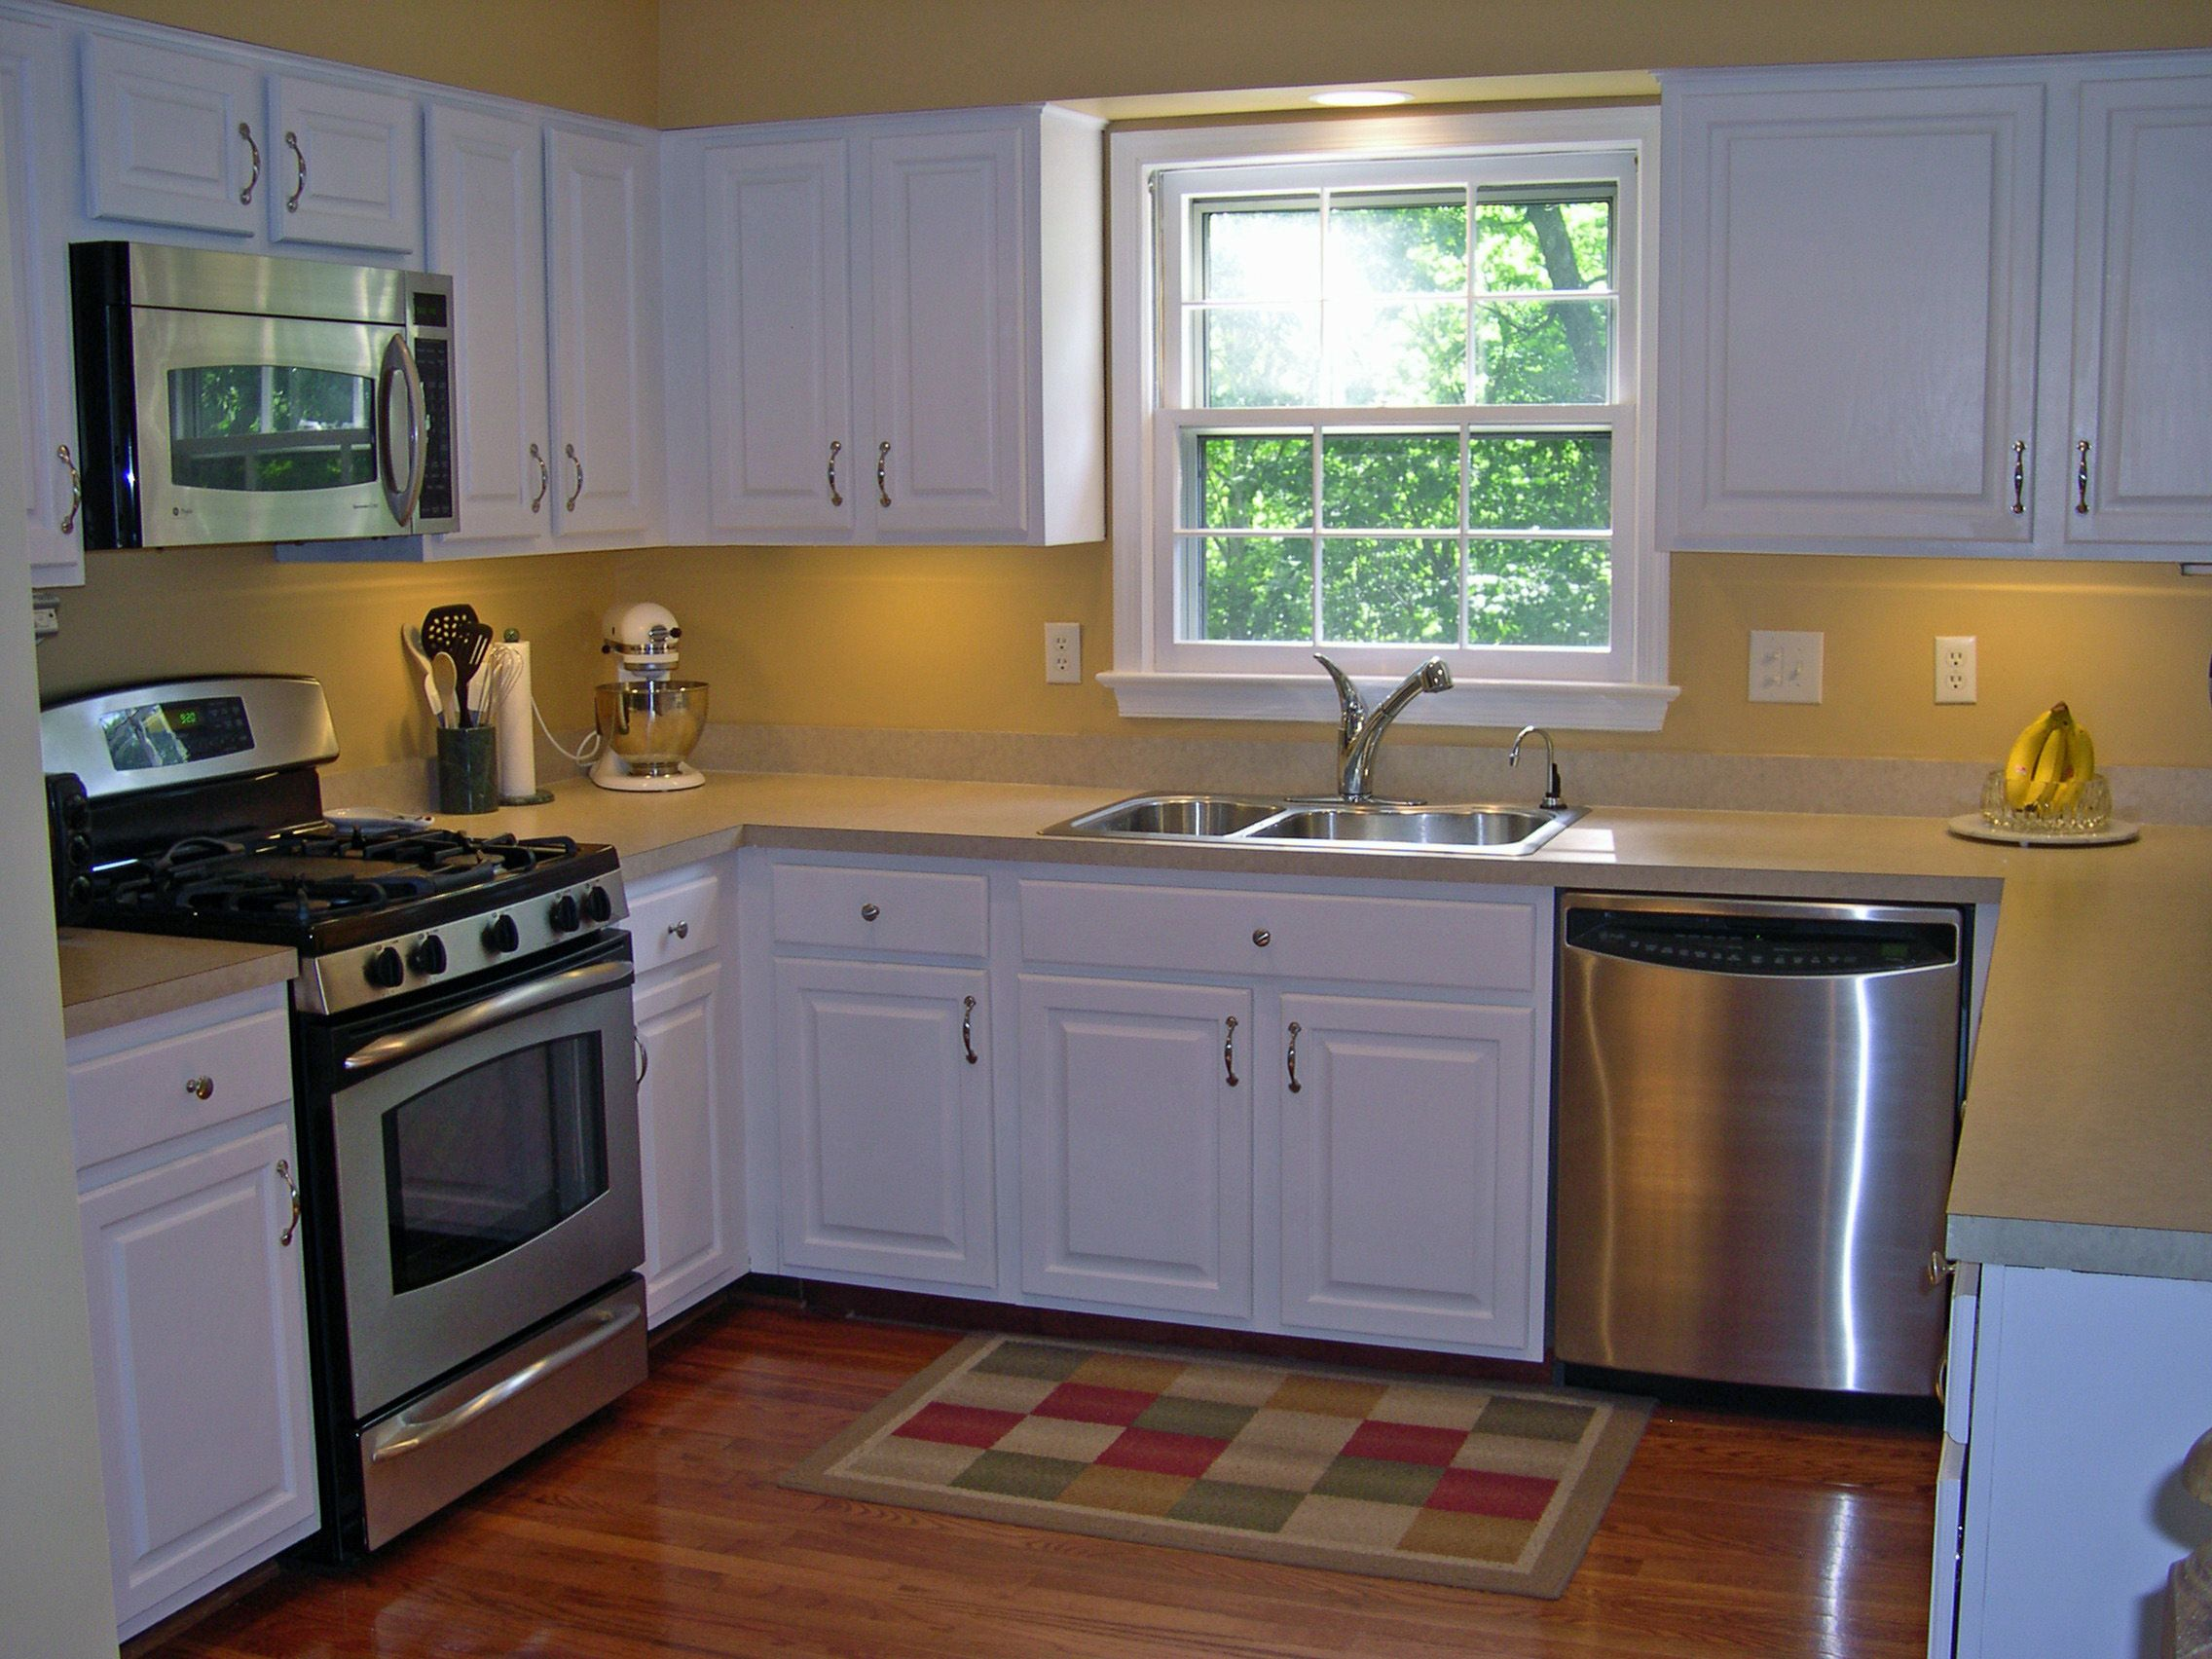 Good Ideas For Remodeling Small Kitchen Part - 8: Small Kitchen Designs On A Budget | Small Kitchen Remodel Ideas On A Budget  7 (